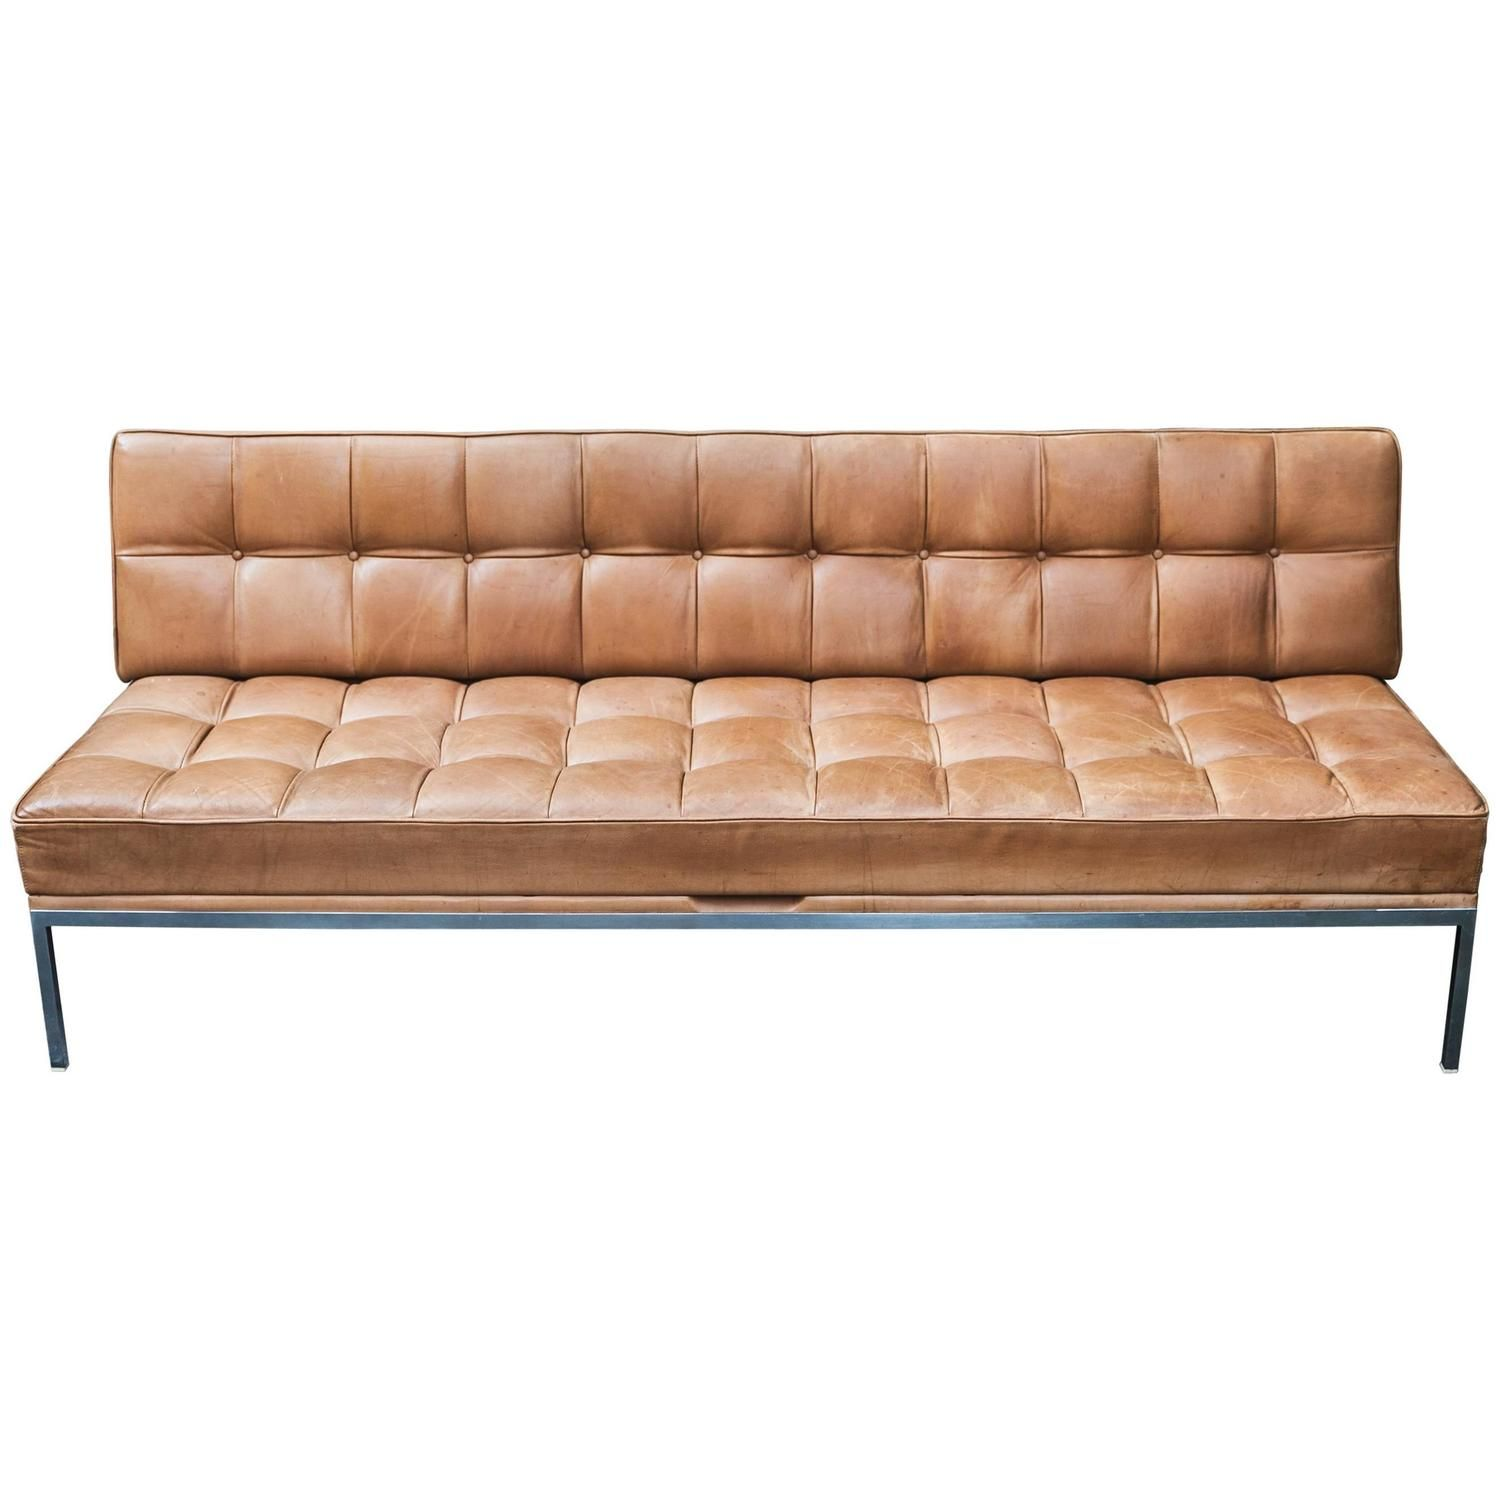 modern daybed. Johannes Spalt Constanze Sofa Daybed Natural Leather For Wittman Austria | See More Antique And Modern